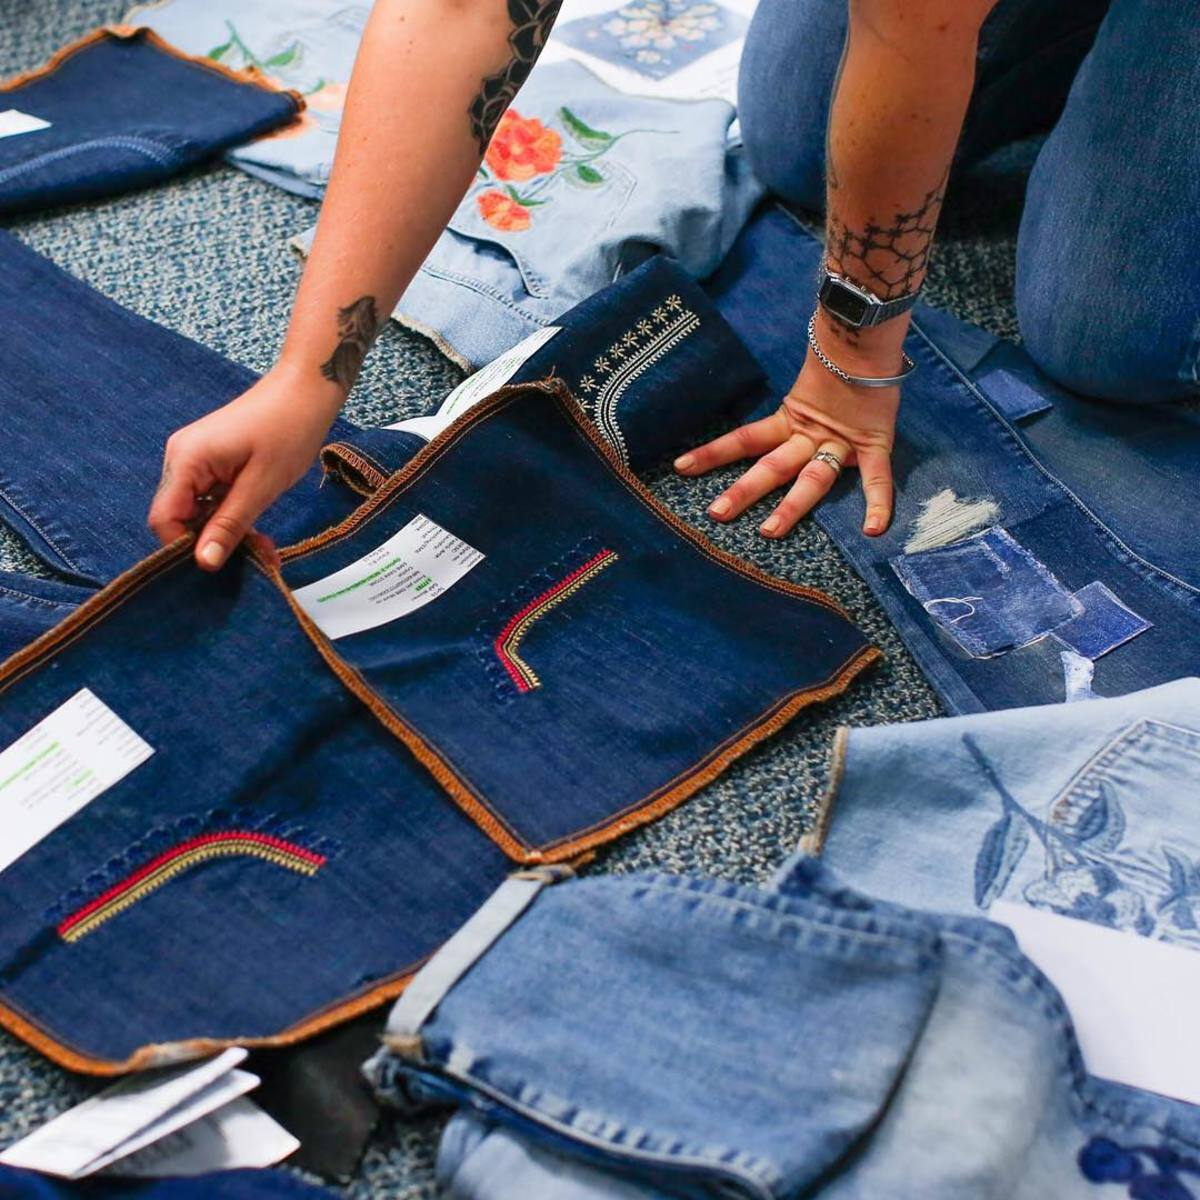 The Gap design team examining embroidered denim from its past, present and future collections. Photo: @gapinc/Instagram